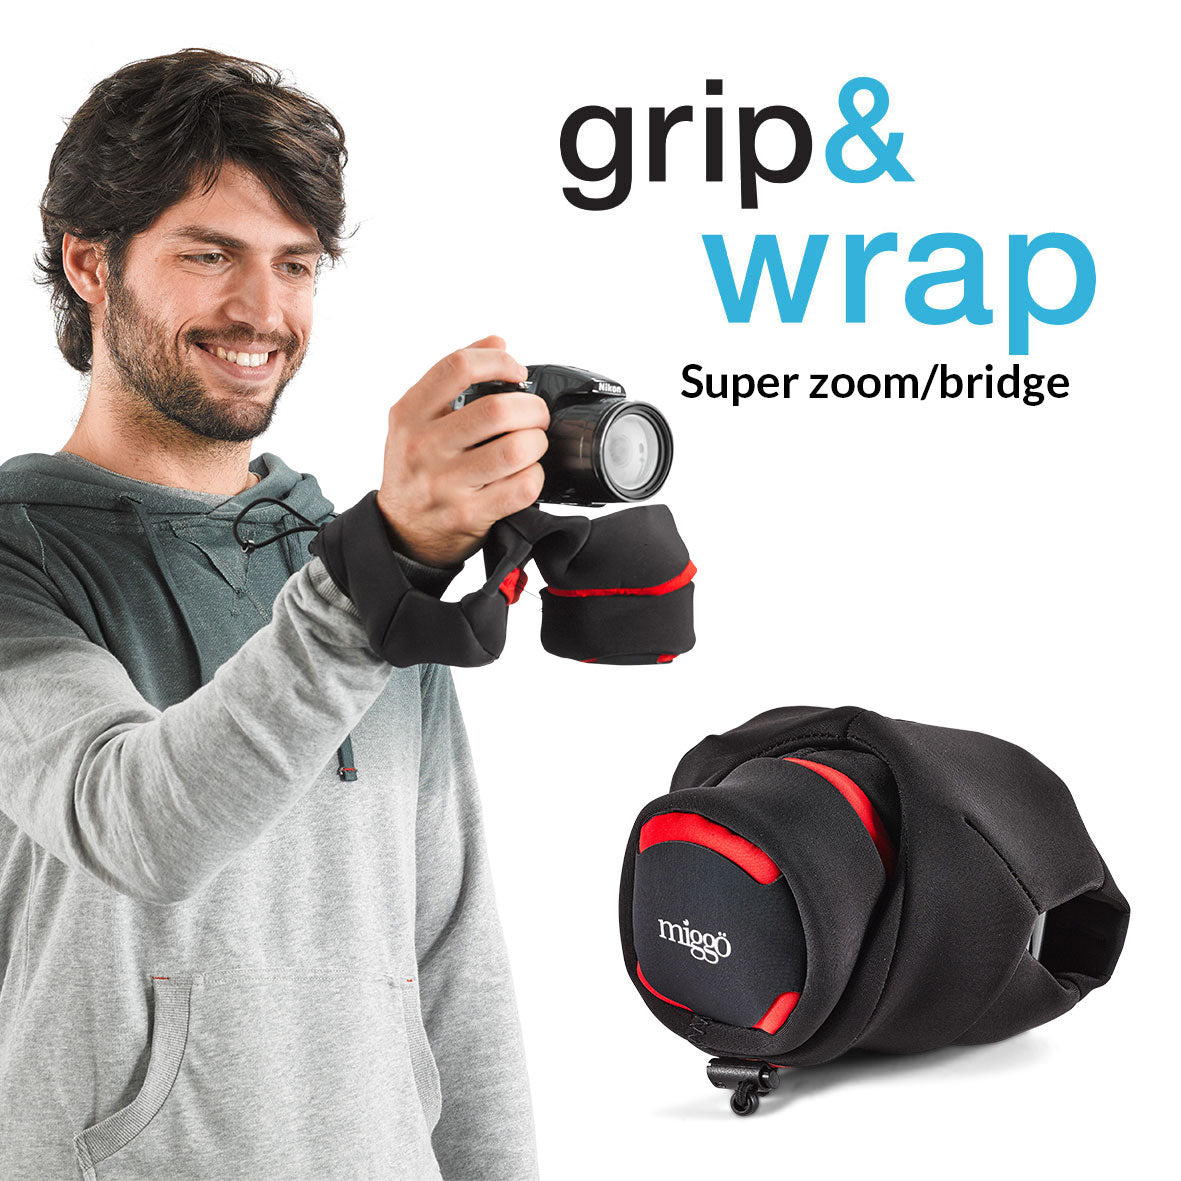 miggo_Grip_And_Wrap_super-zoom-_Main_Red-black